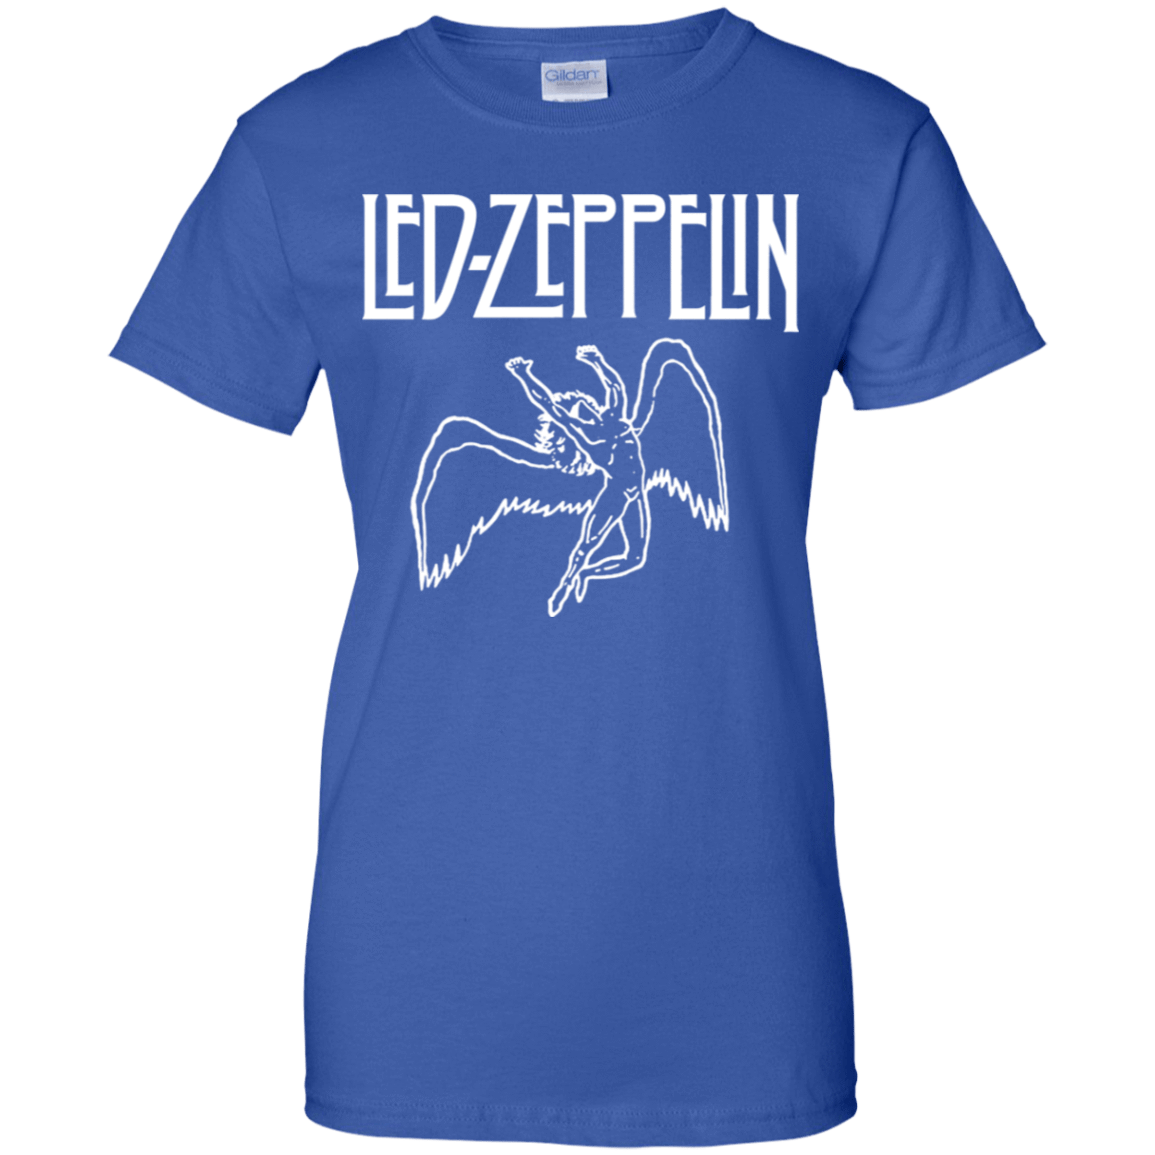 Led Zeppelin 939-9264-72742974-44807 - Tee Ript